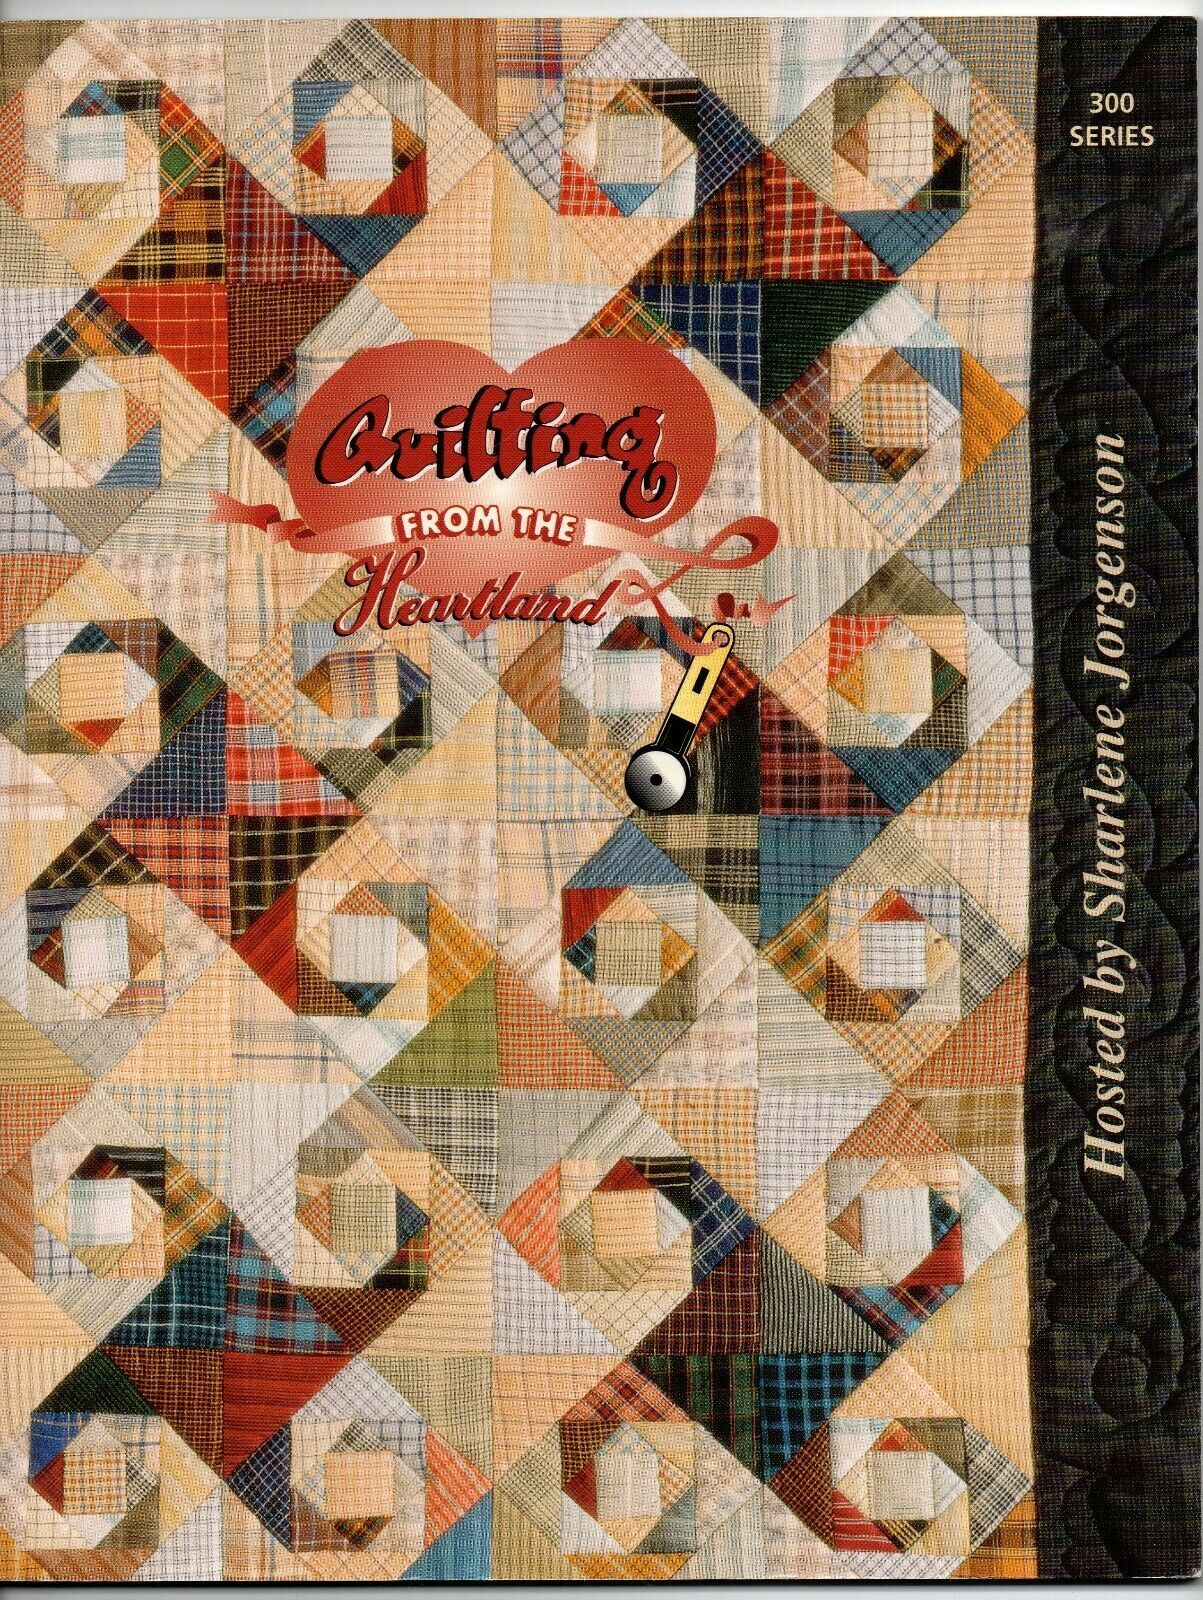 Primary image for 1995/Quilting From The Heartland/Hosted by Sharlene Jorgenson/Craft BOOK